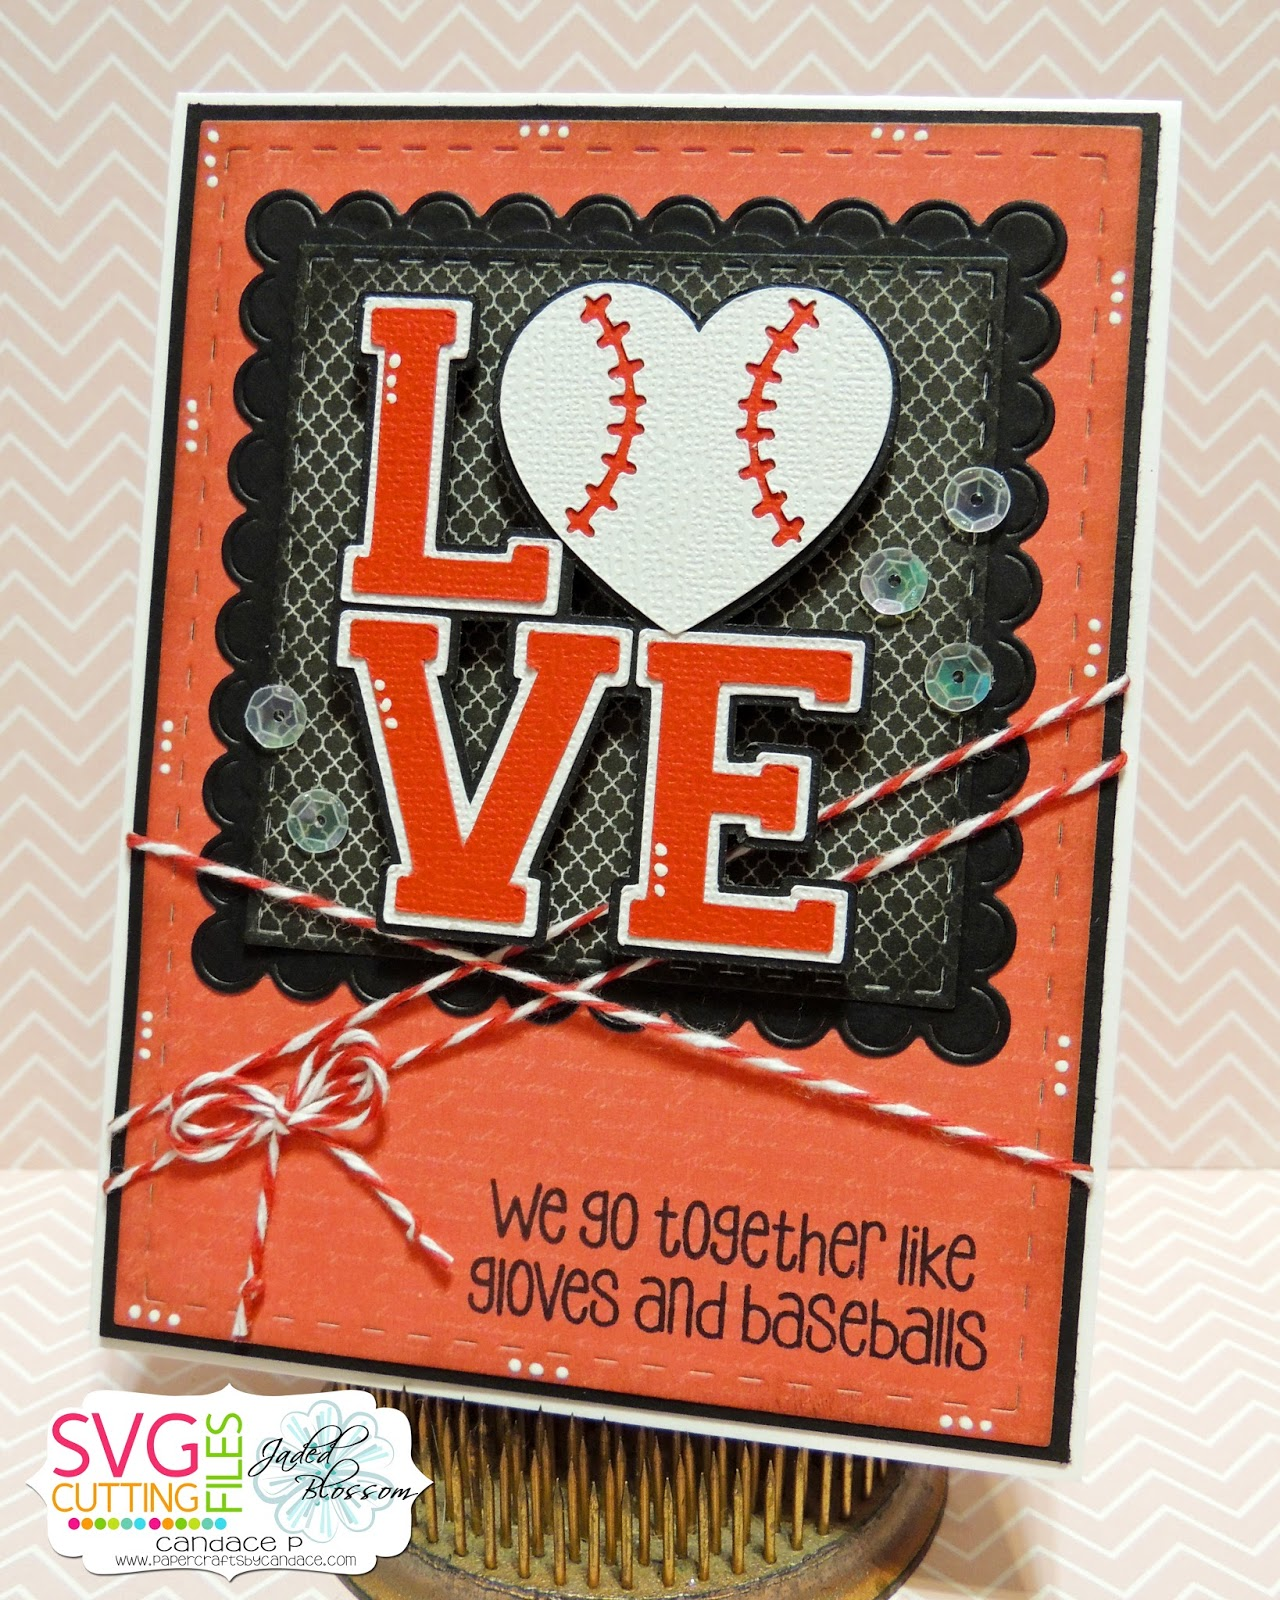 Download SVG Cutting Files: LOVE baseball